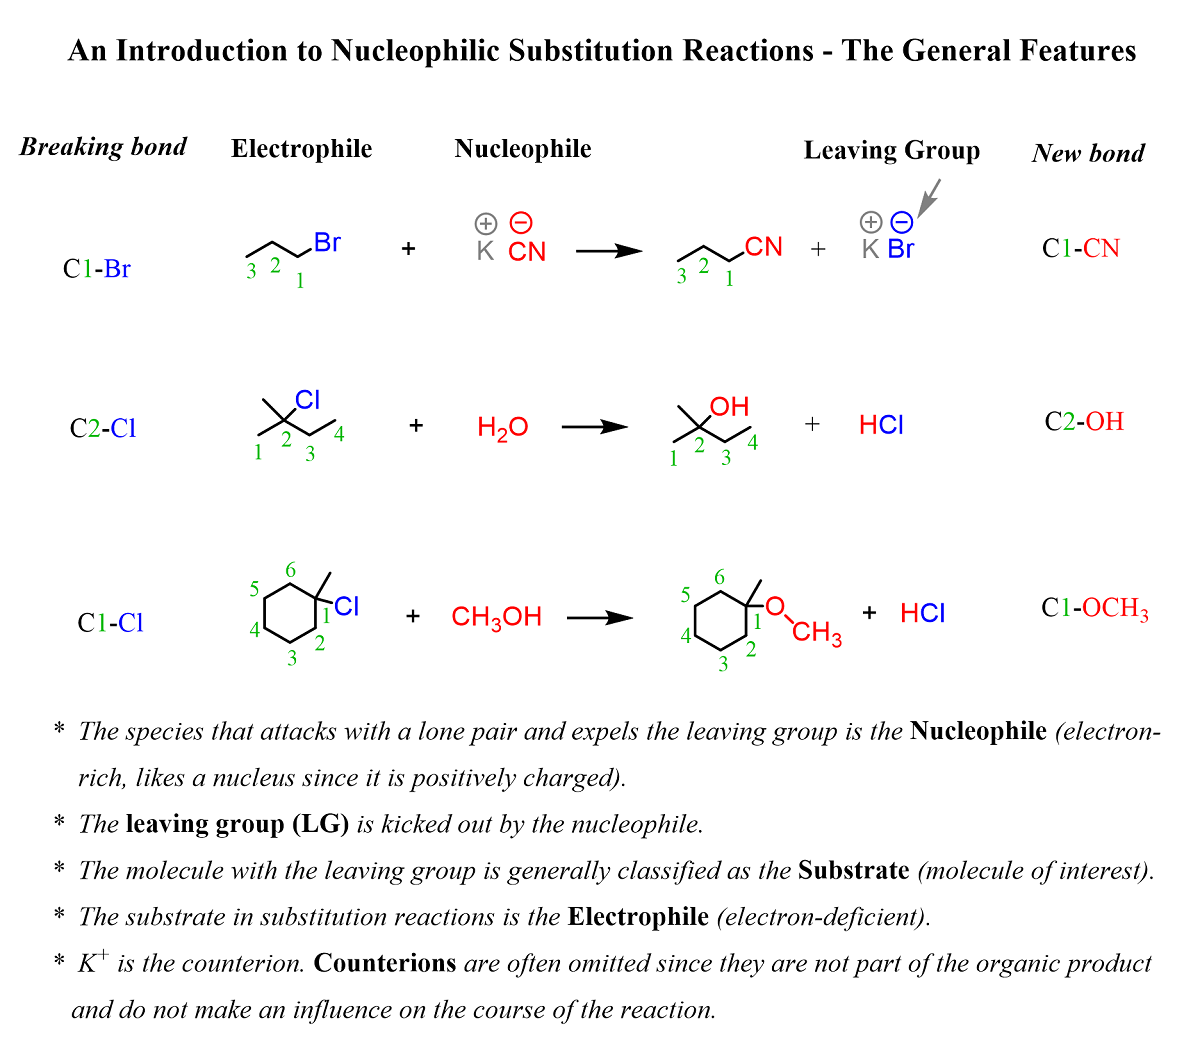 Nucleophilic Substitution Reactions An Introduction